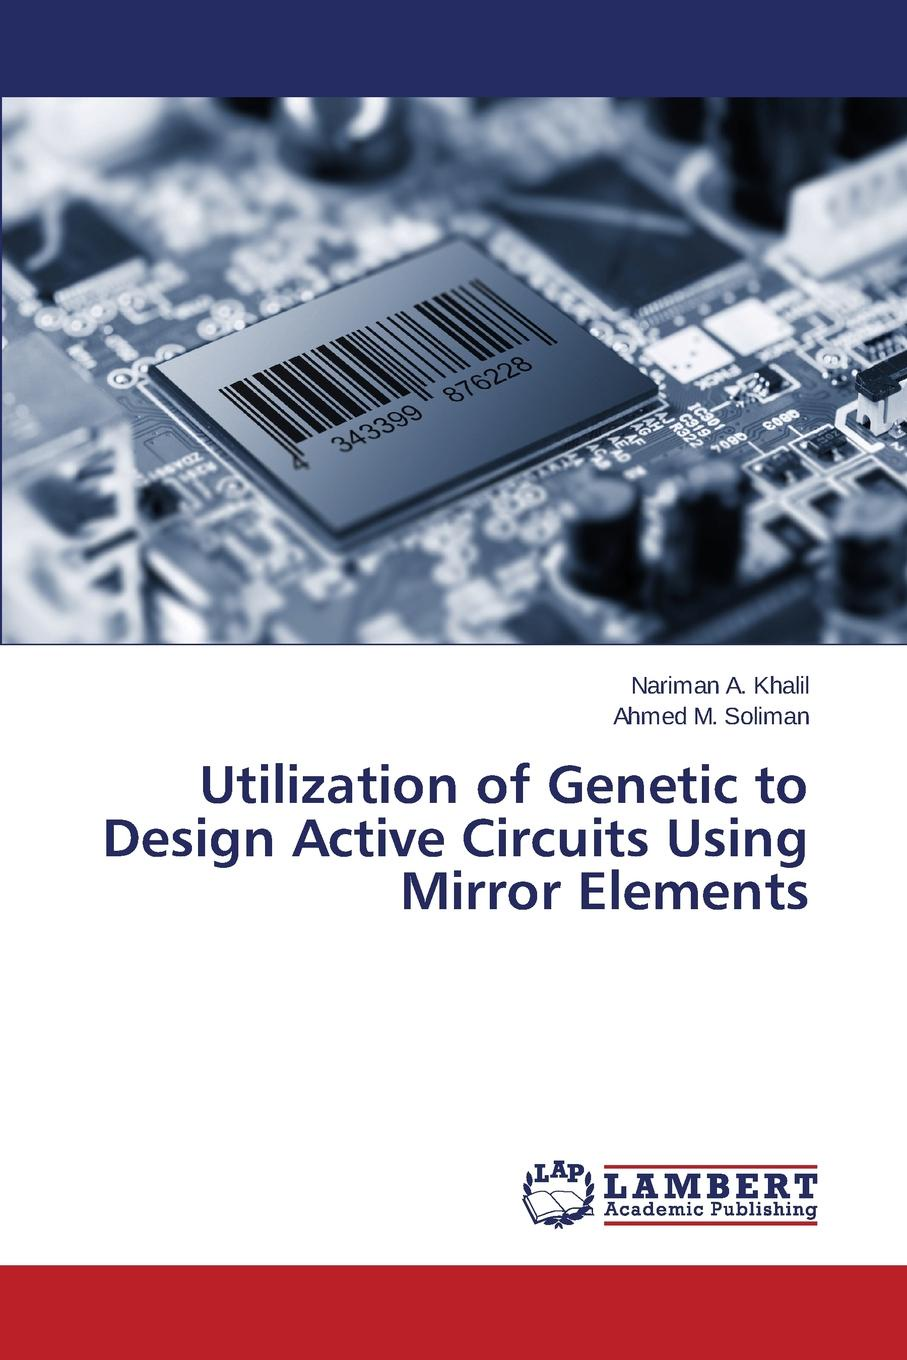 цена на A. Khalil Nariman, M. Soliman Ahmed Utilization of Genetic to Design Active Circuits Using Mirror Elements